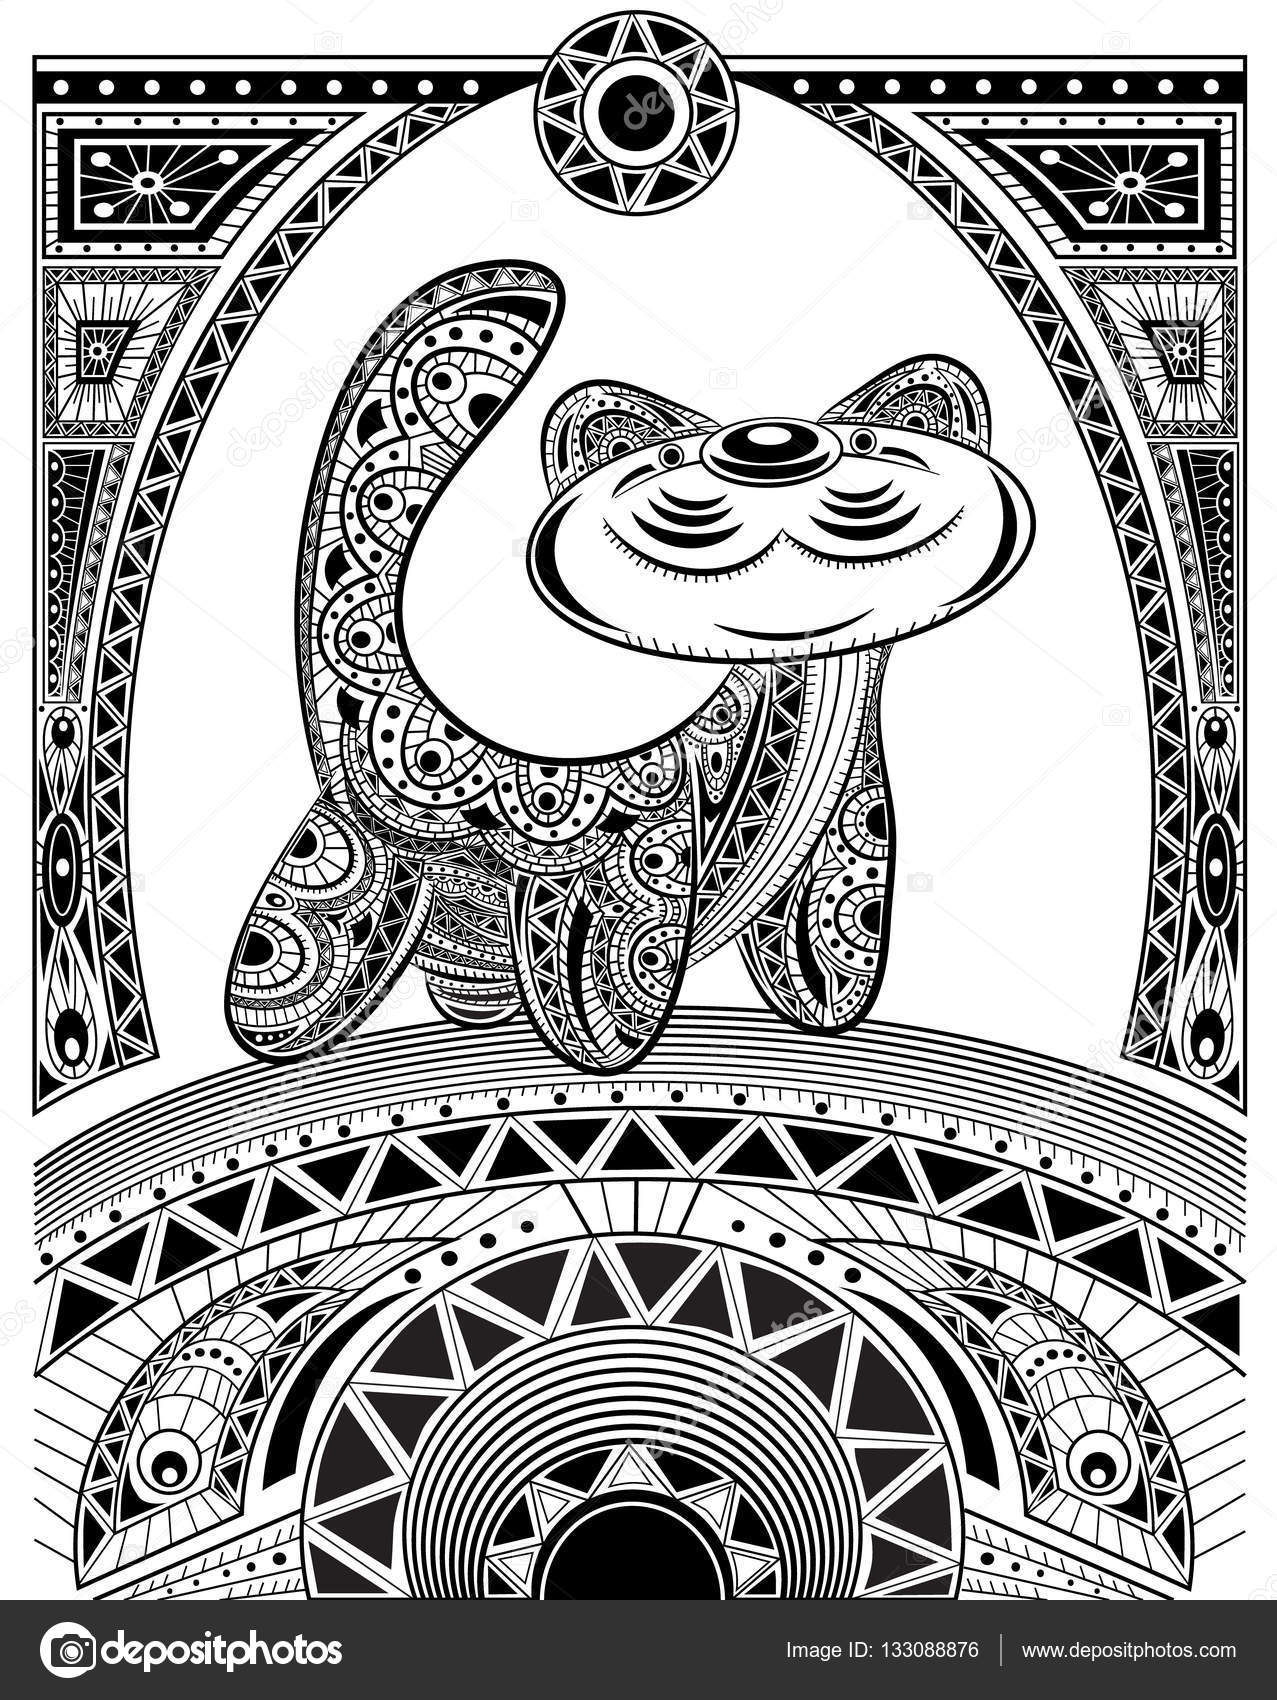 Stylized Vector Cat Zentangle Isolated For Relax And Meditation